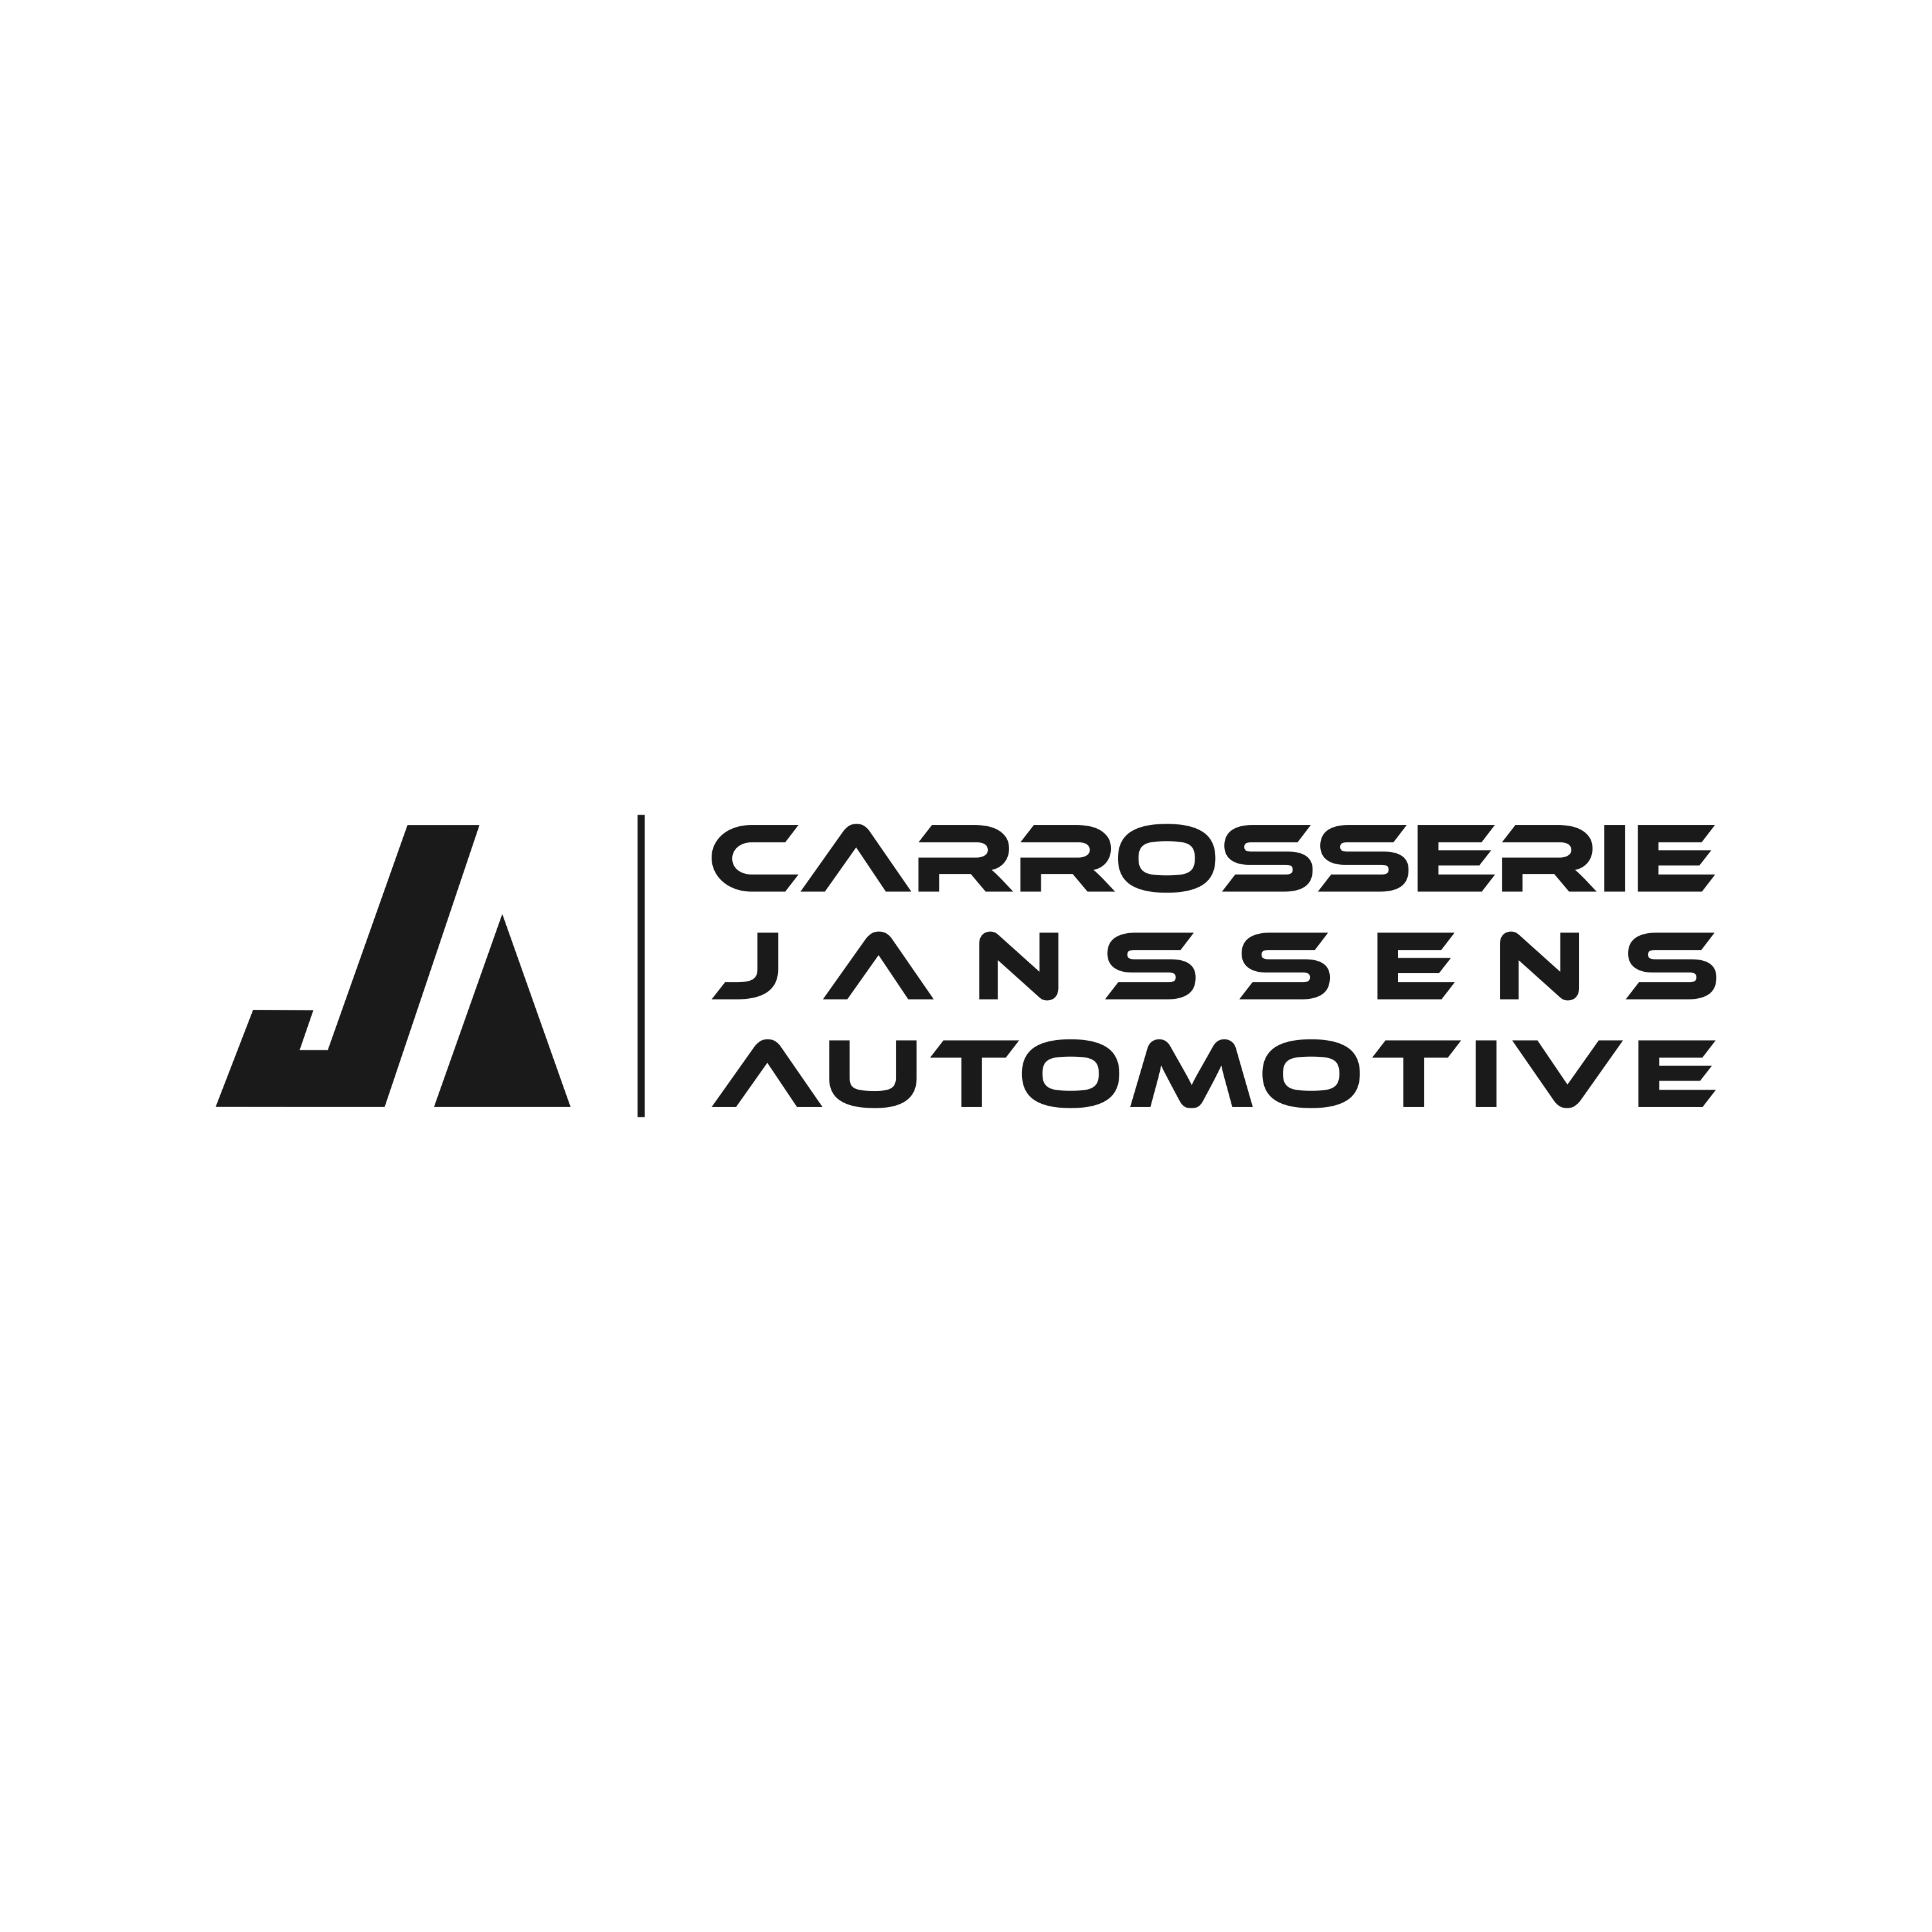 automotive company searching for a strong classy logo